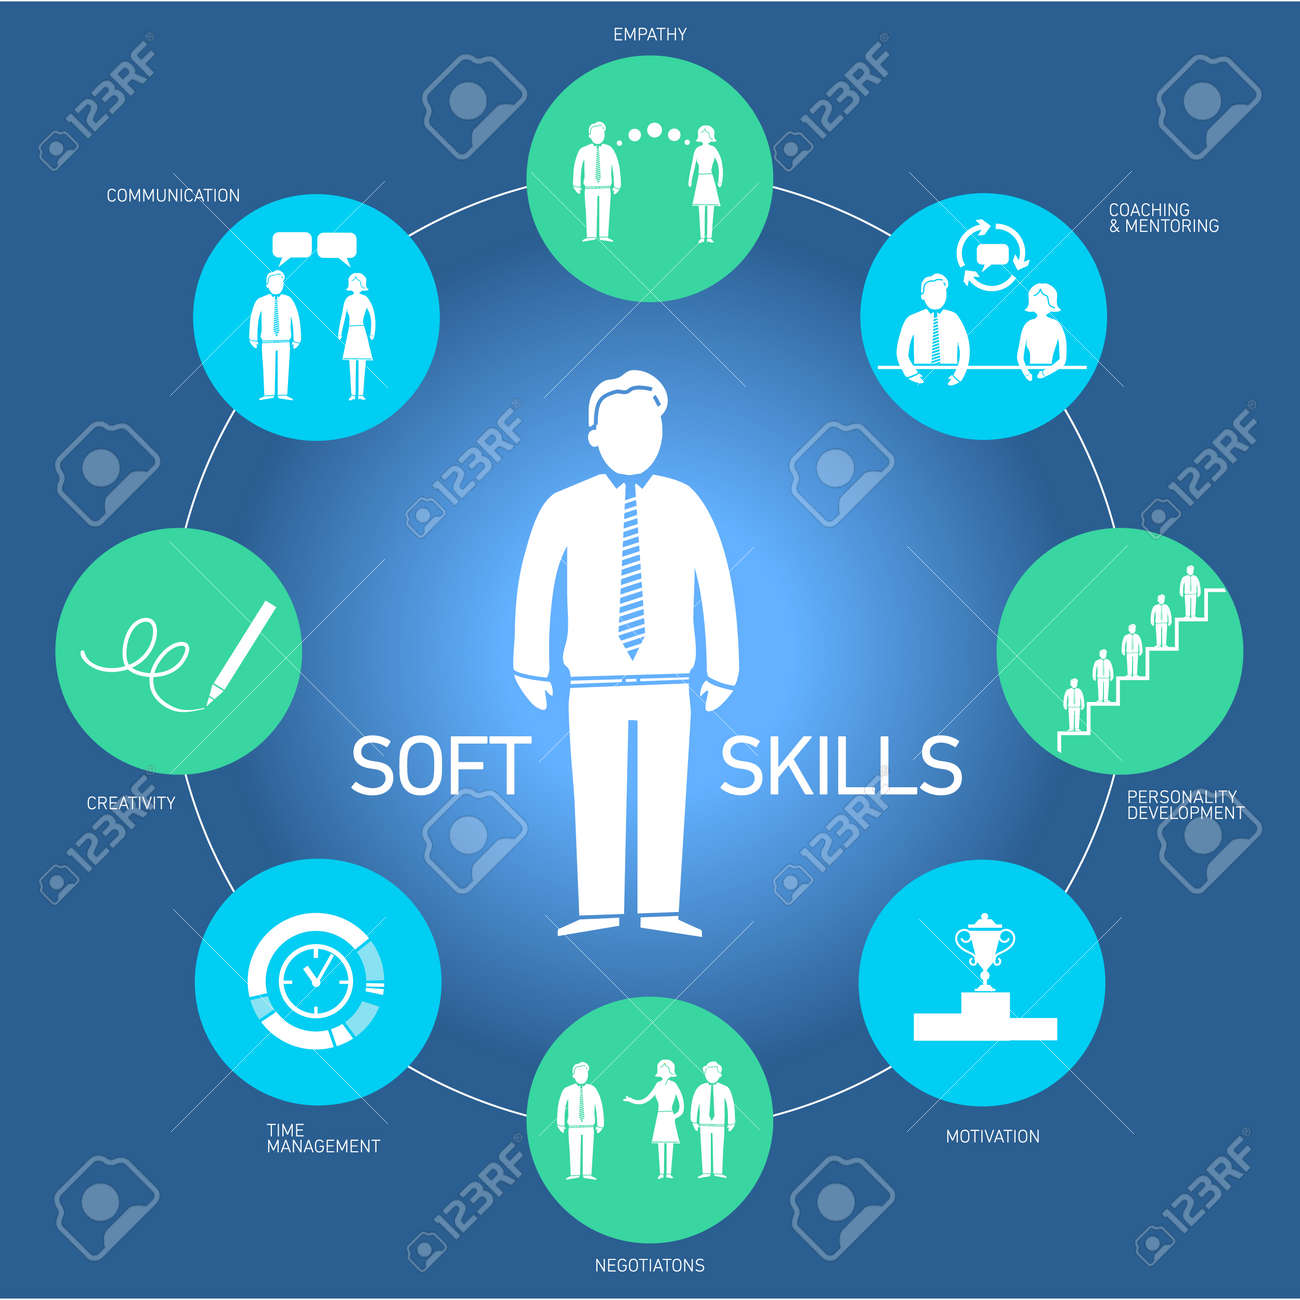 Soft skills vector icons and pictograms set black on colorfulf background - 24380336